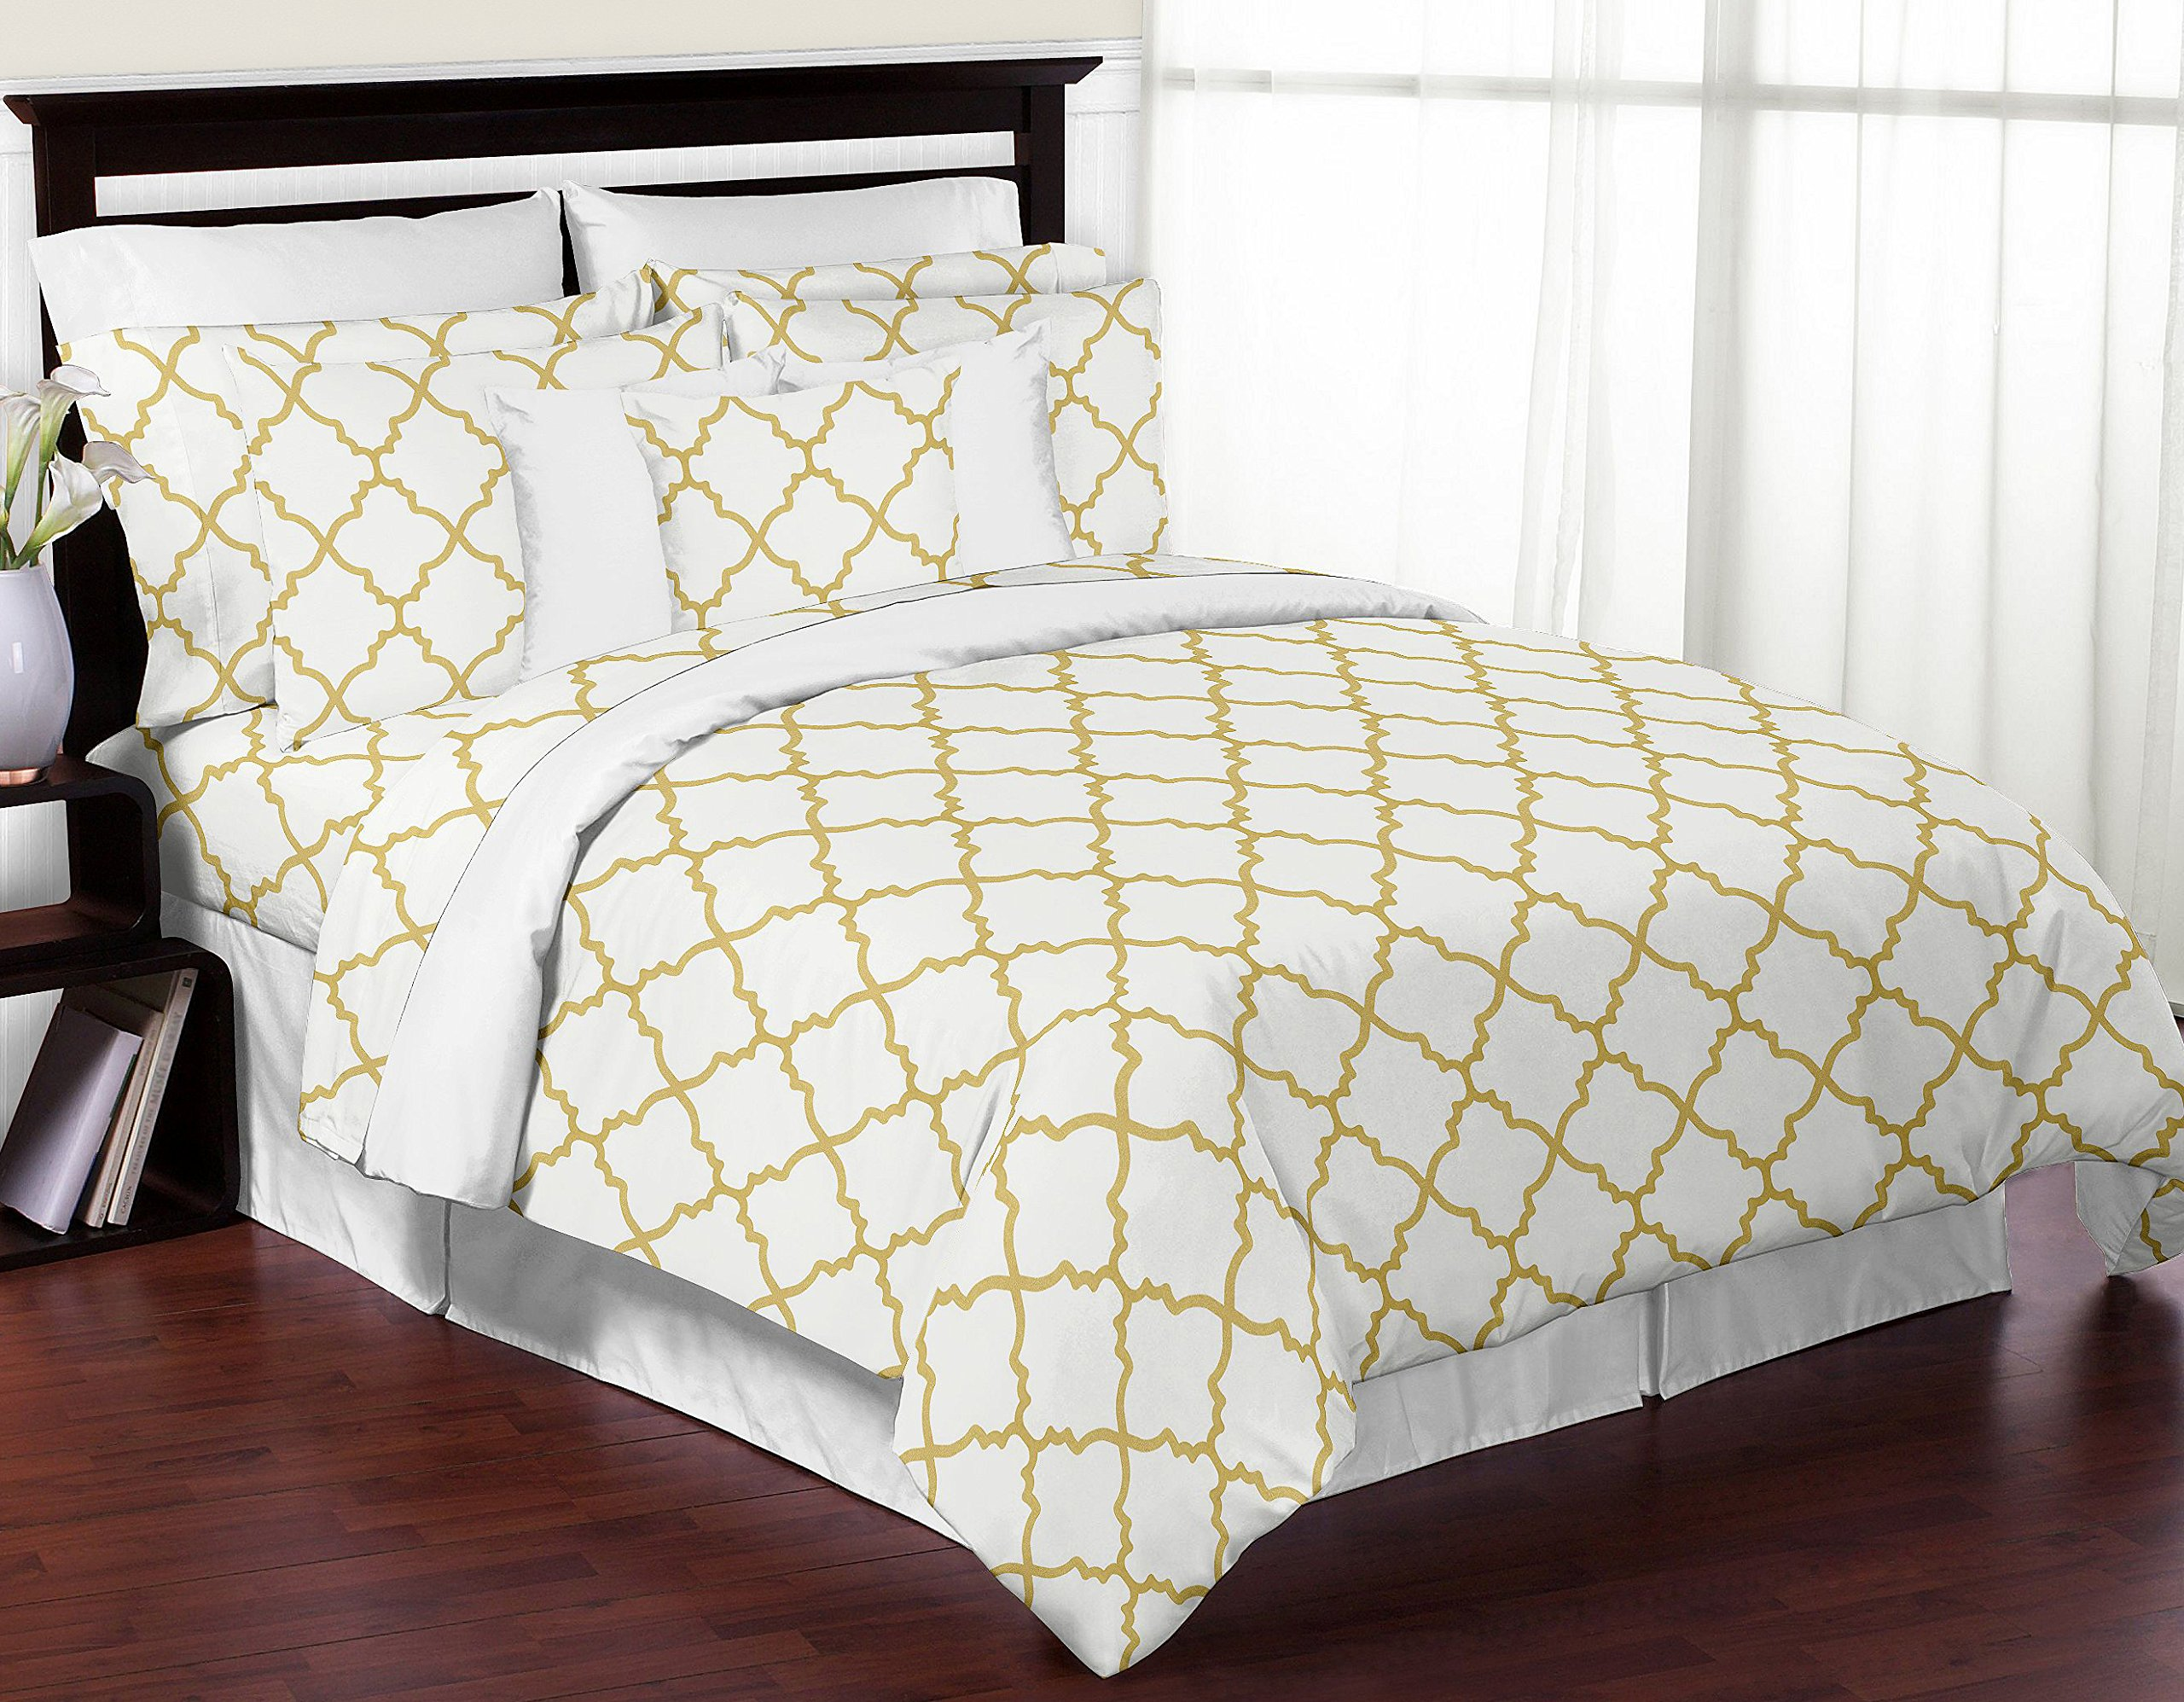 Sweet Jojo Designs 3-Piece Modern White and Gold Trellis Lattice Girls Full / Queen Bedding Set Collection